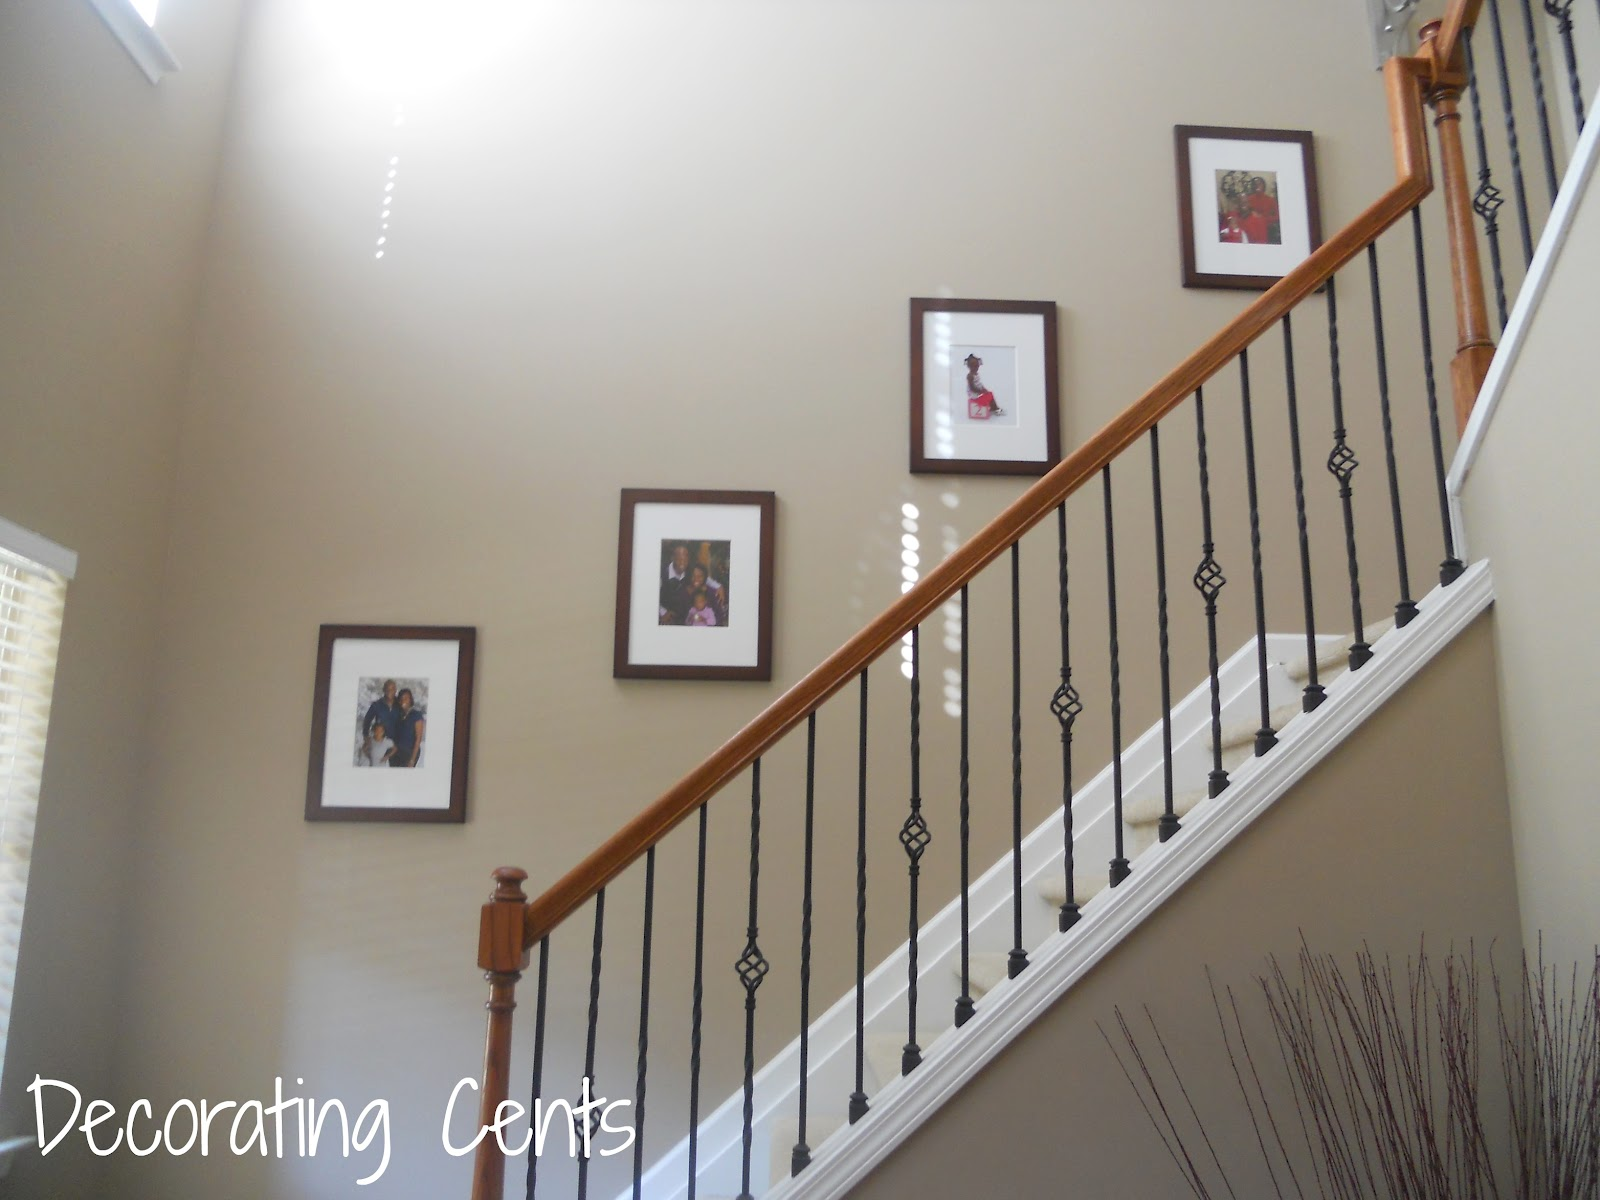 Stair Wall Decorating Ideas - Home Decoration Ideas